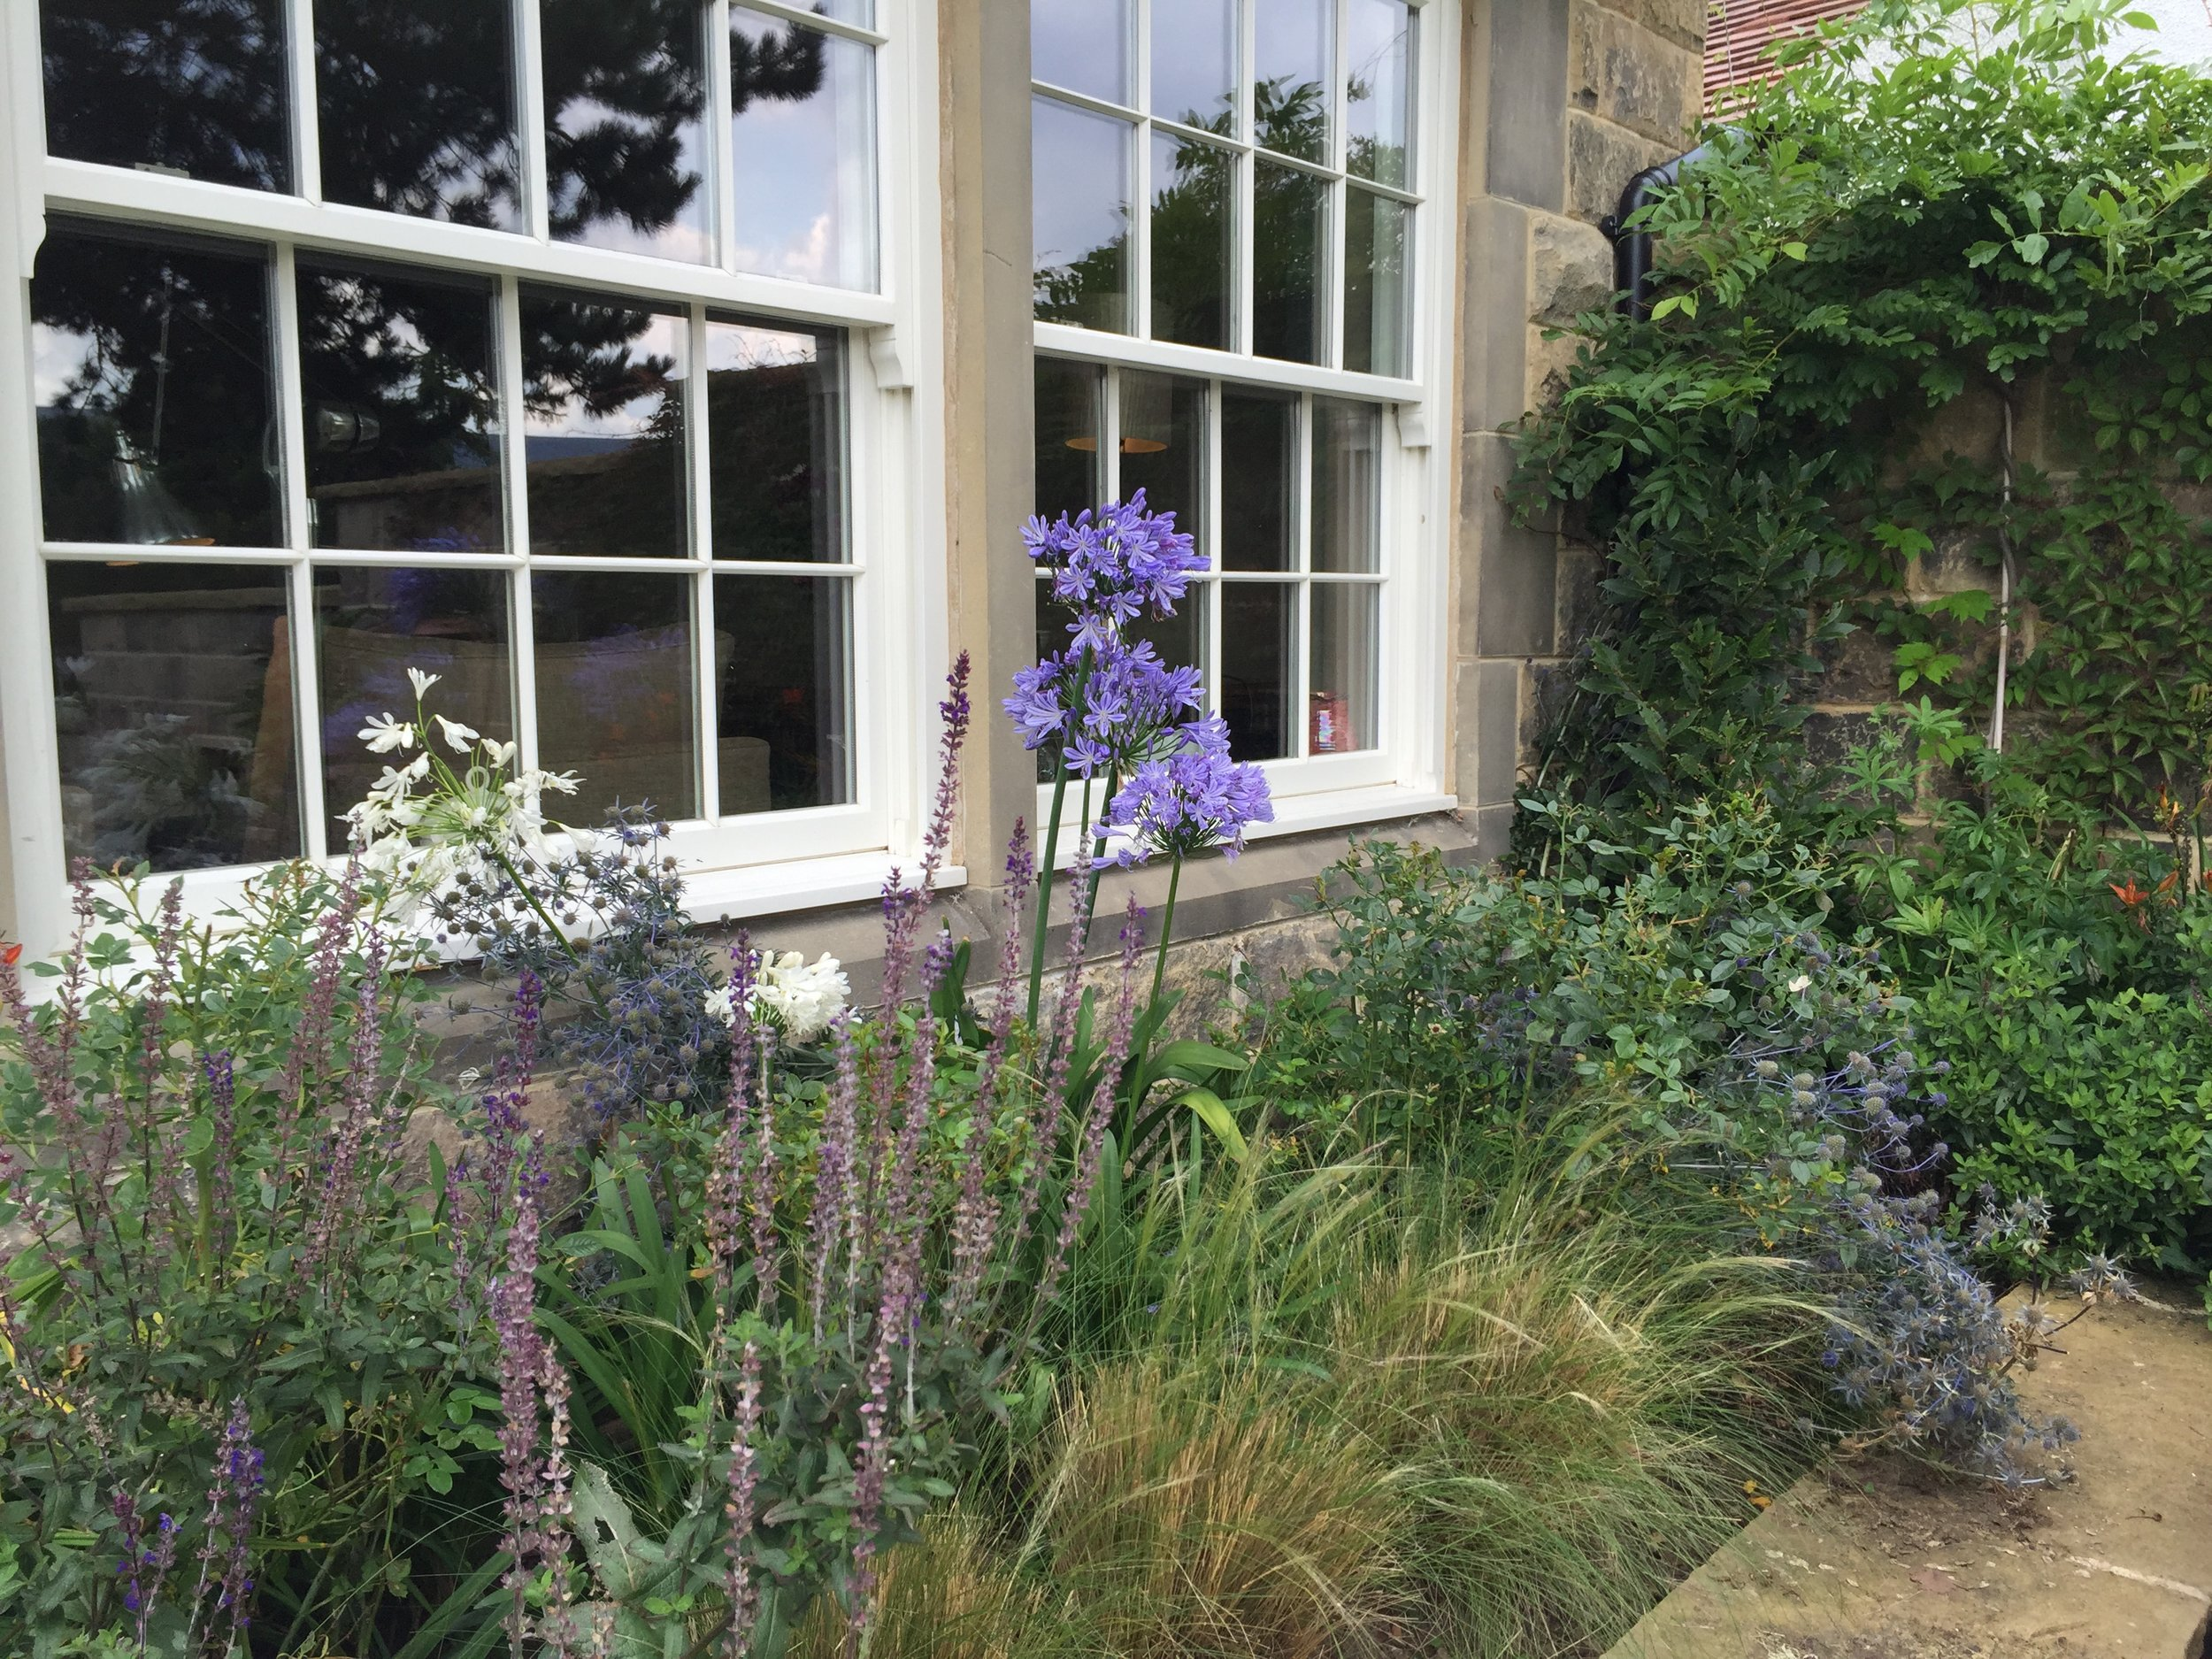 New border planting with blue and white Agapanthus, salvias, Eryngium (sea holly) and floaty grass,  Stipa Pony Tails .